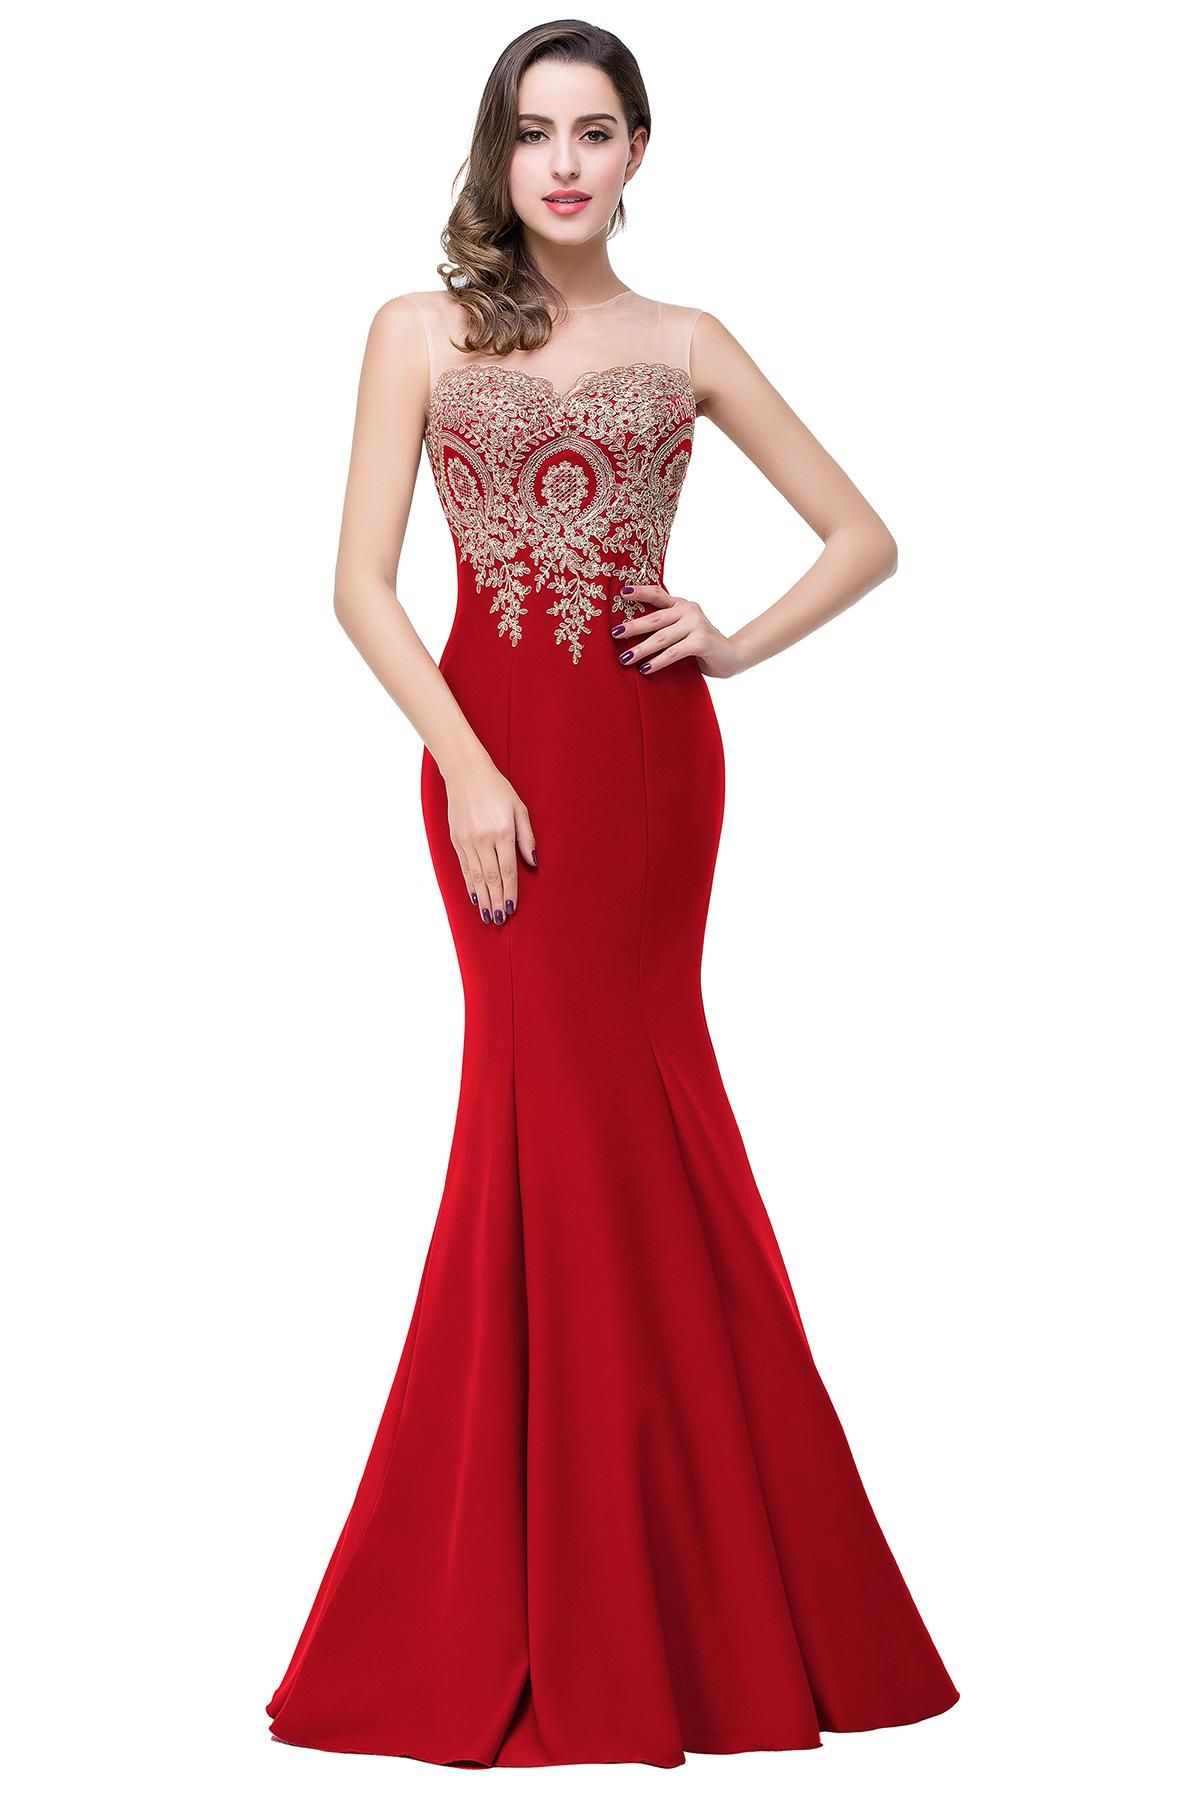 866b5591b0 Sexy Sheer Neck Sleeveless Designer Evening Dresses Mermaid Lace ...